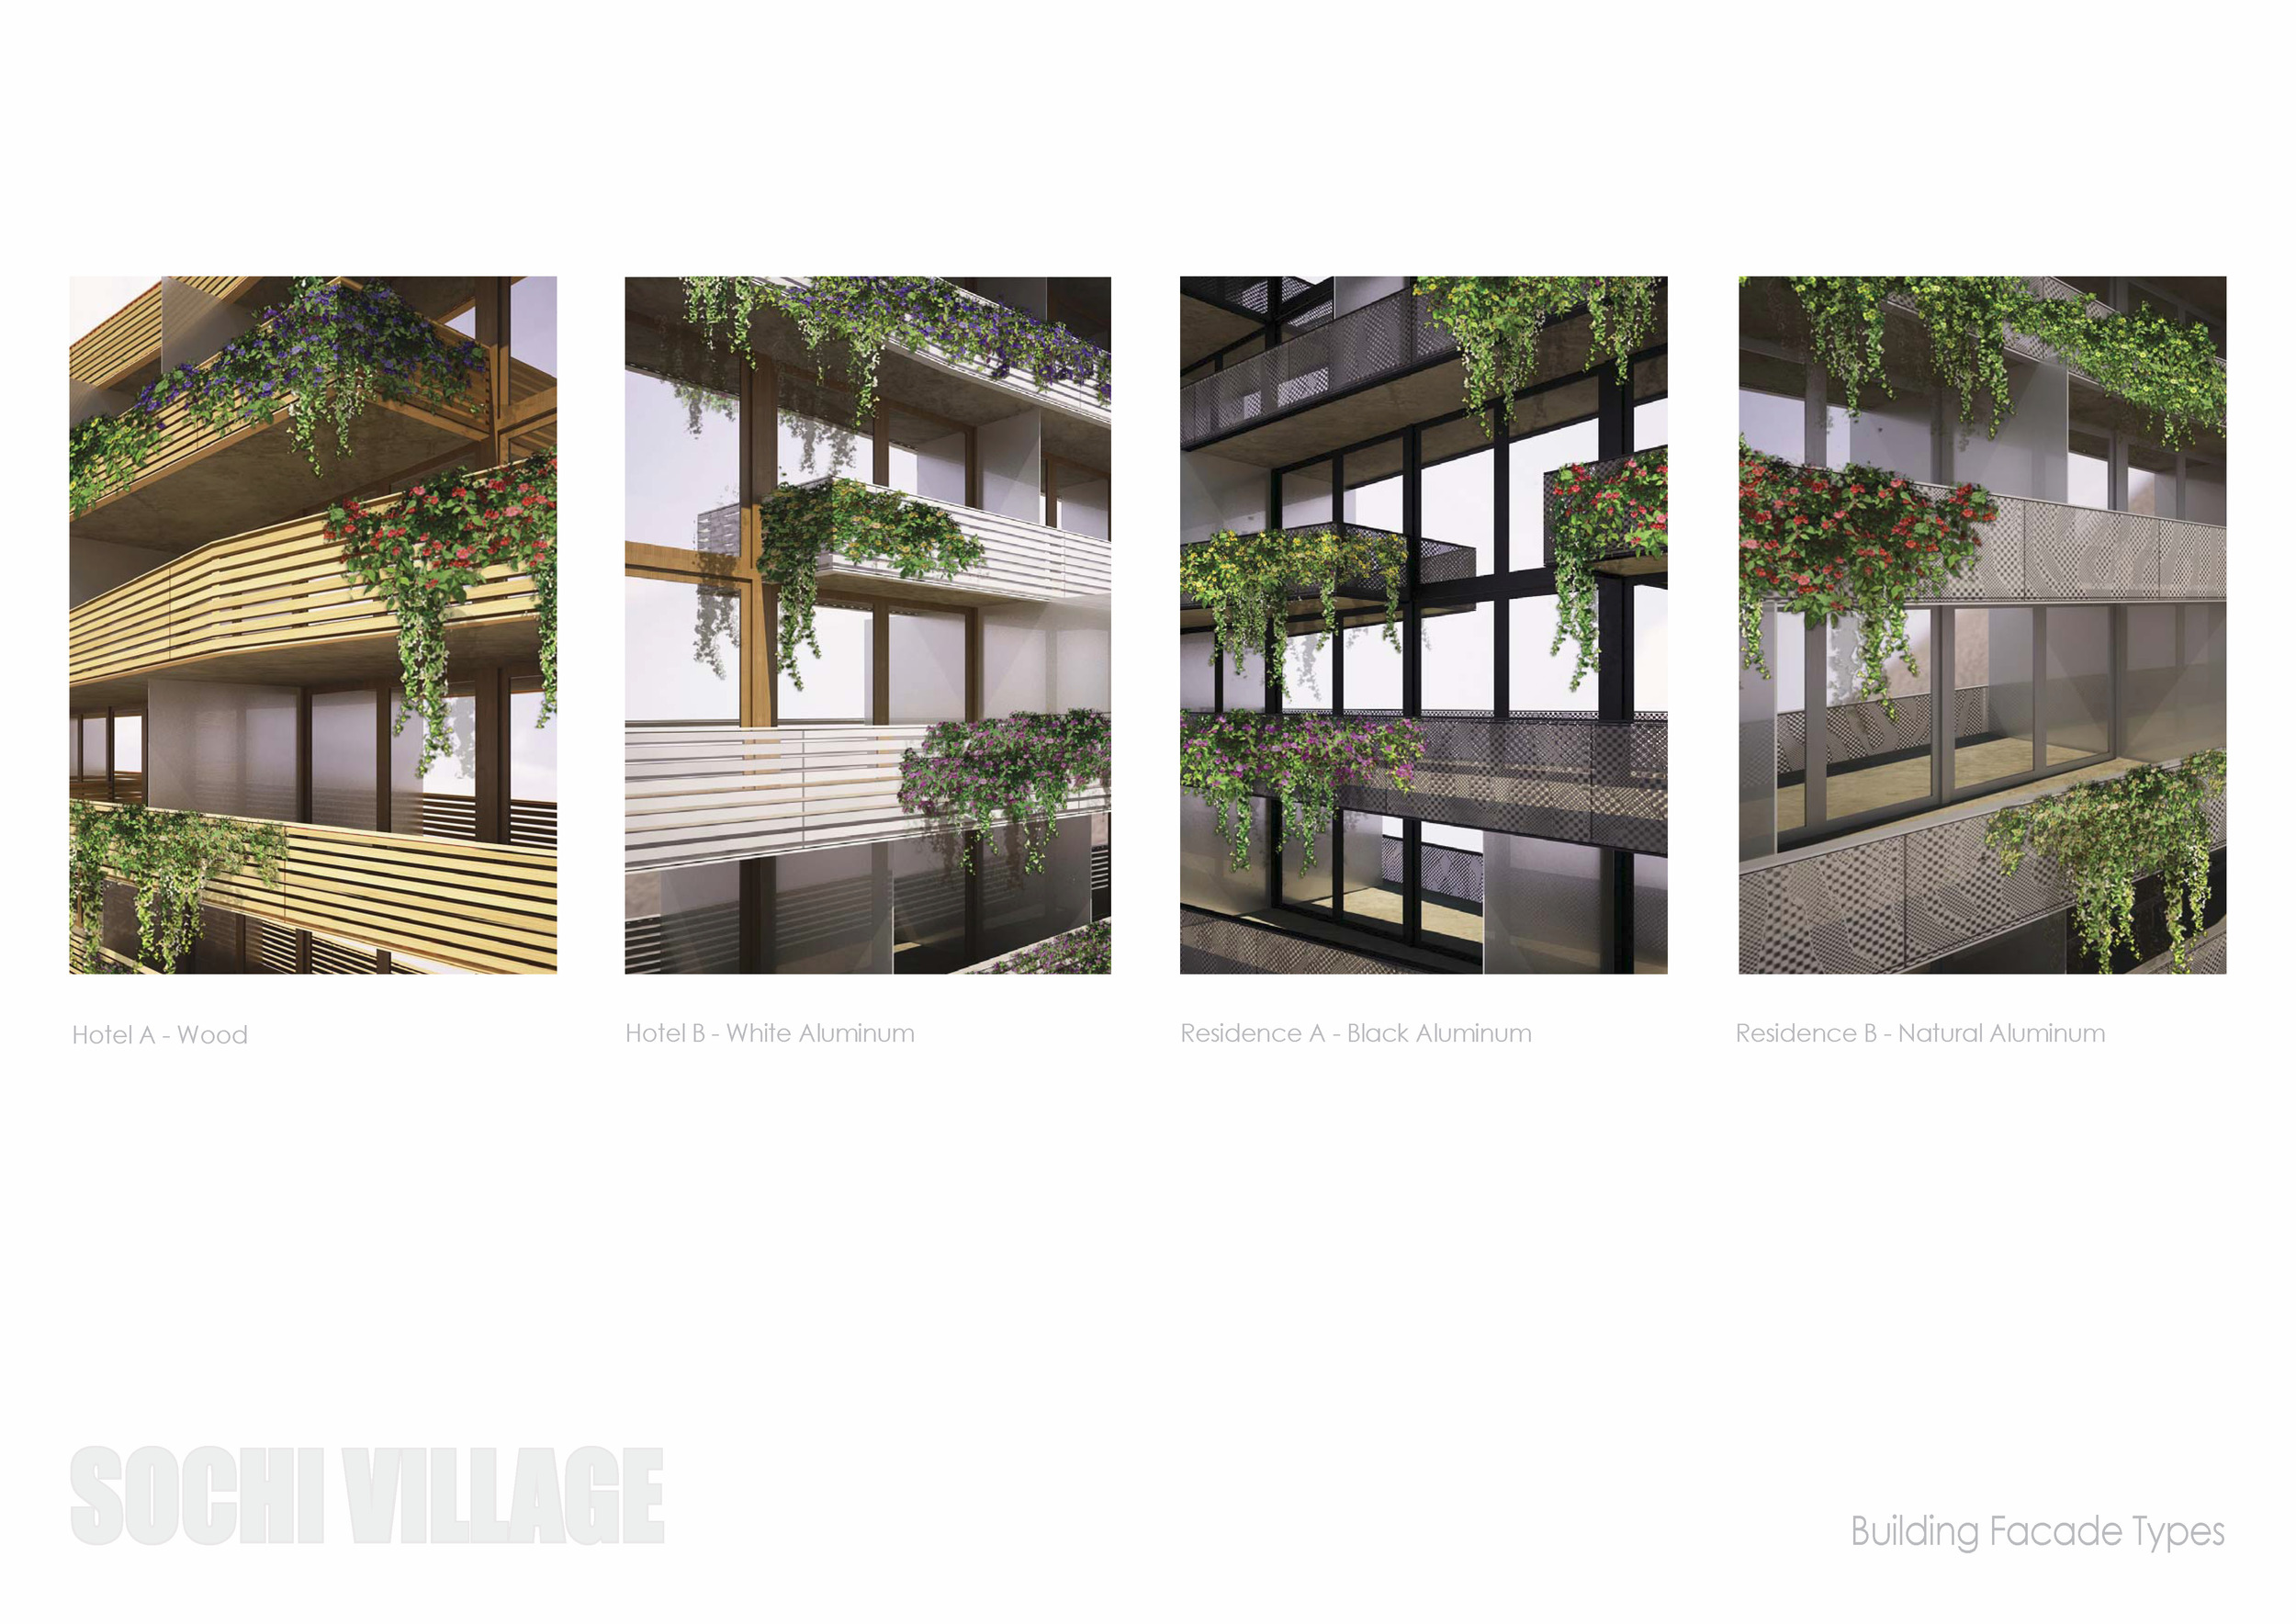 Sochi Olympic Village Building Facade Types